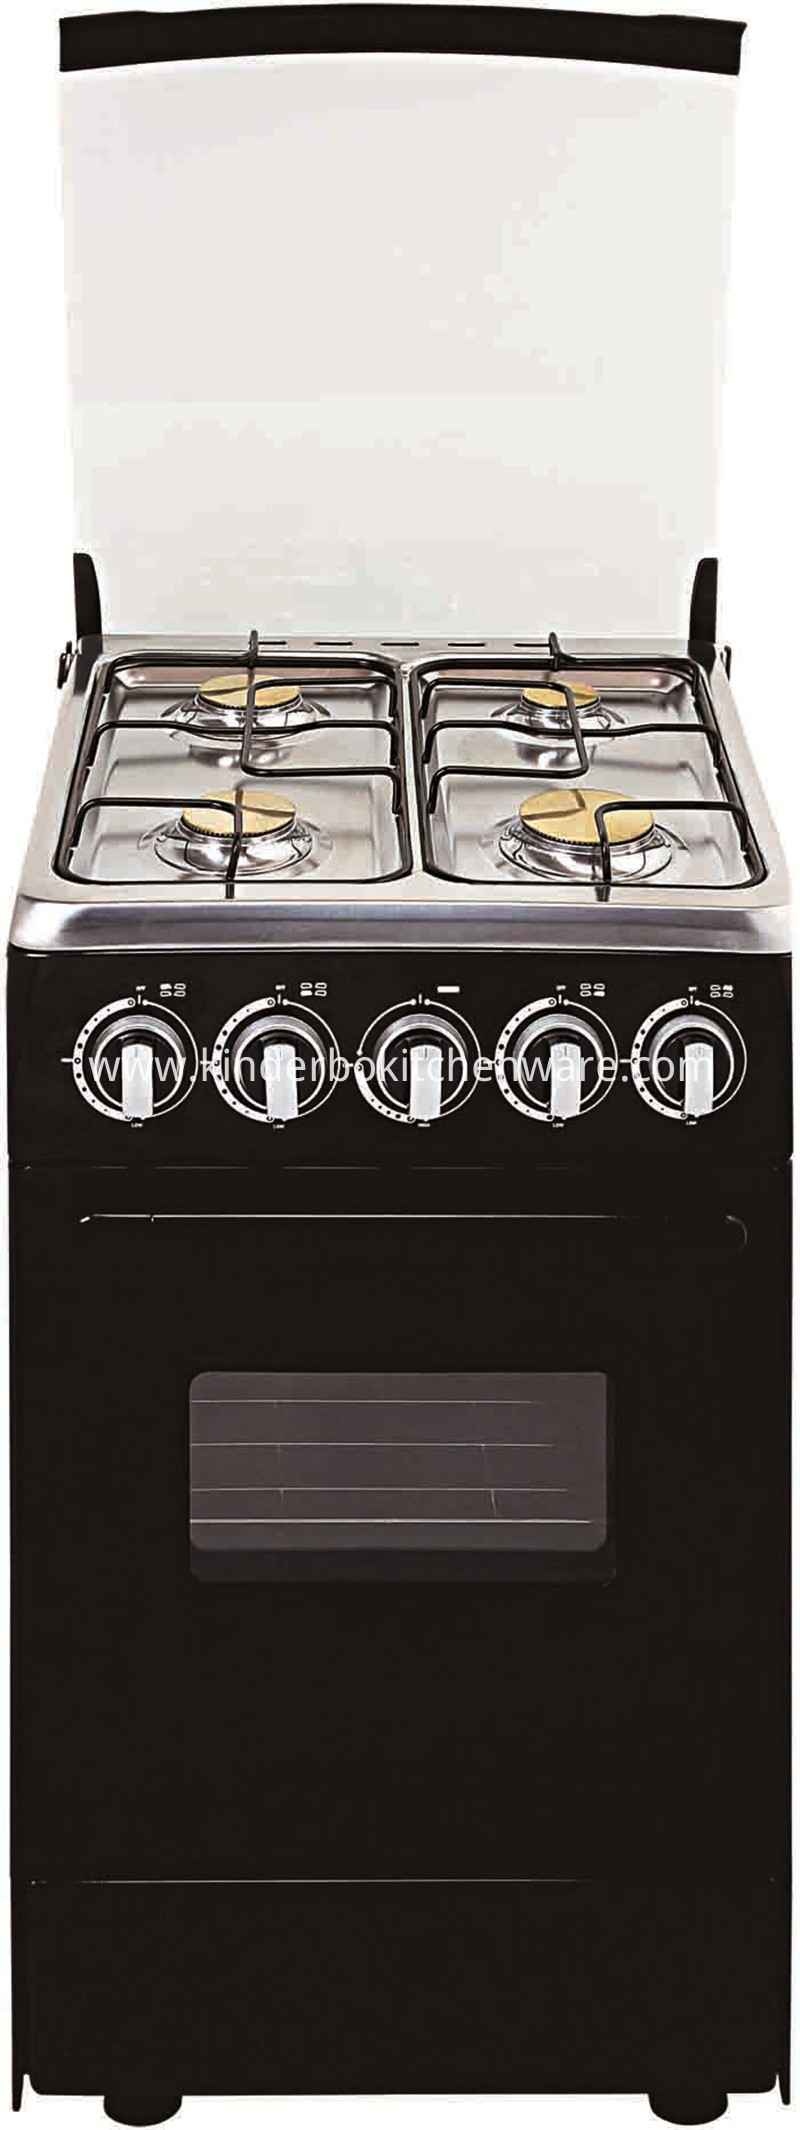 Freestanding Kitchen Gas Range Gas Stove With Oven 4 Burners Gas Stove